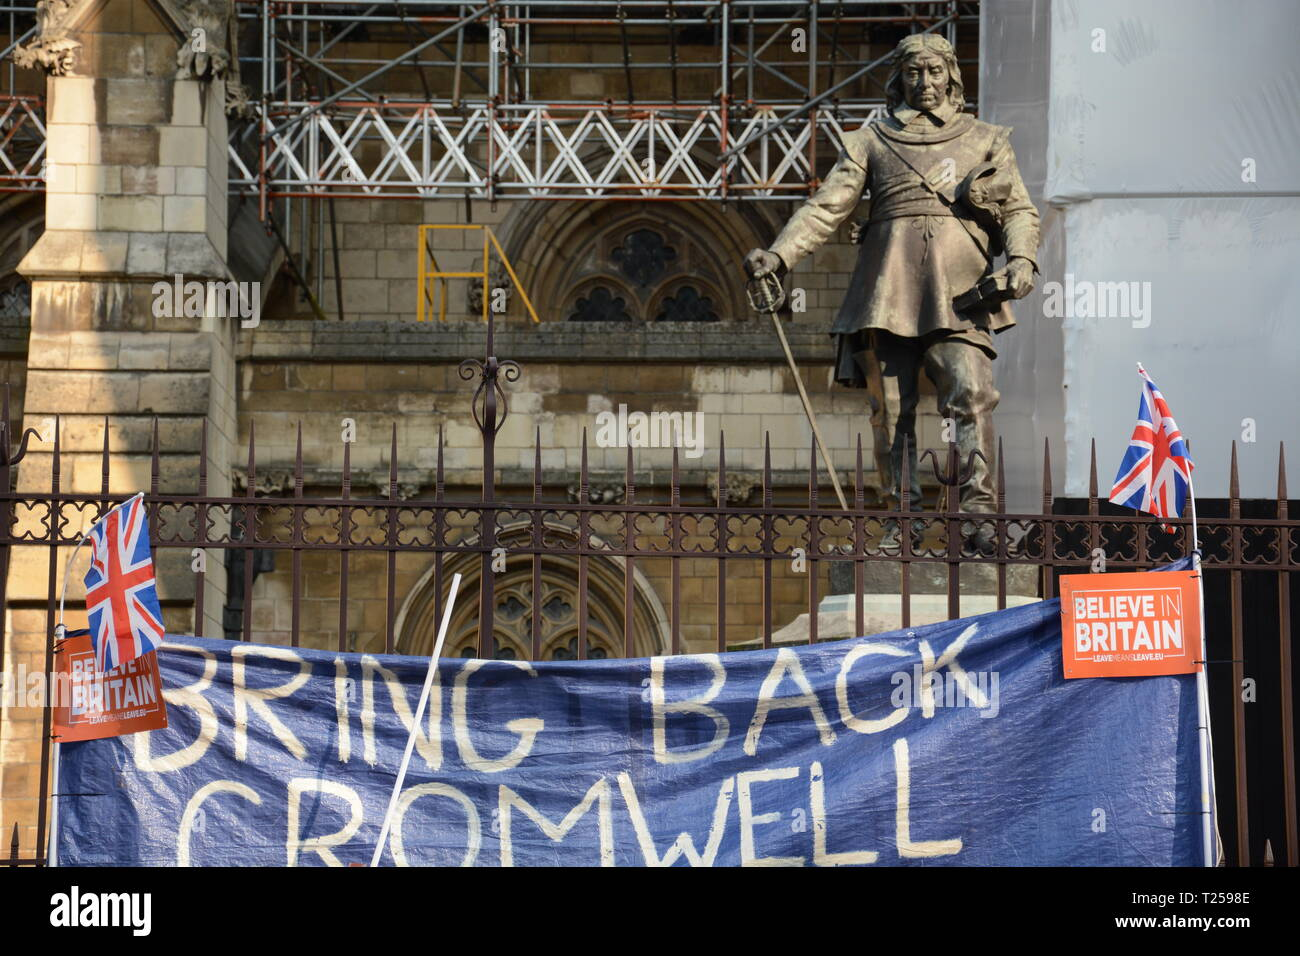 Leave Means Leave Rally on the day the UK was supposed to leave the EU - 29th March 2019 Stock Photo